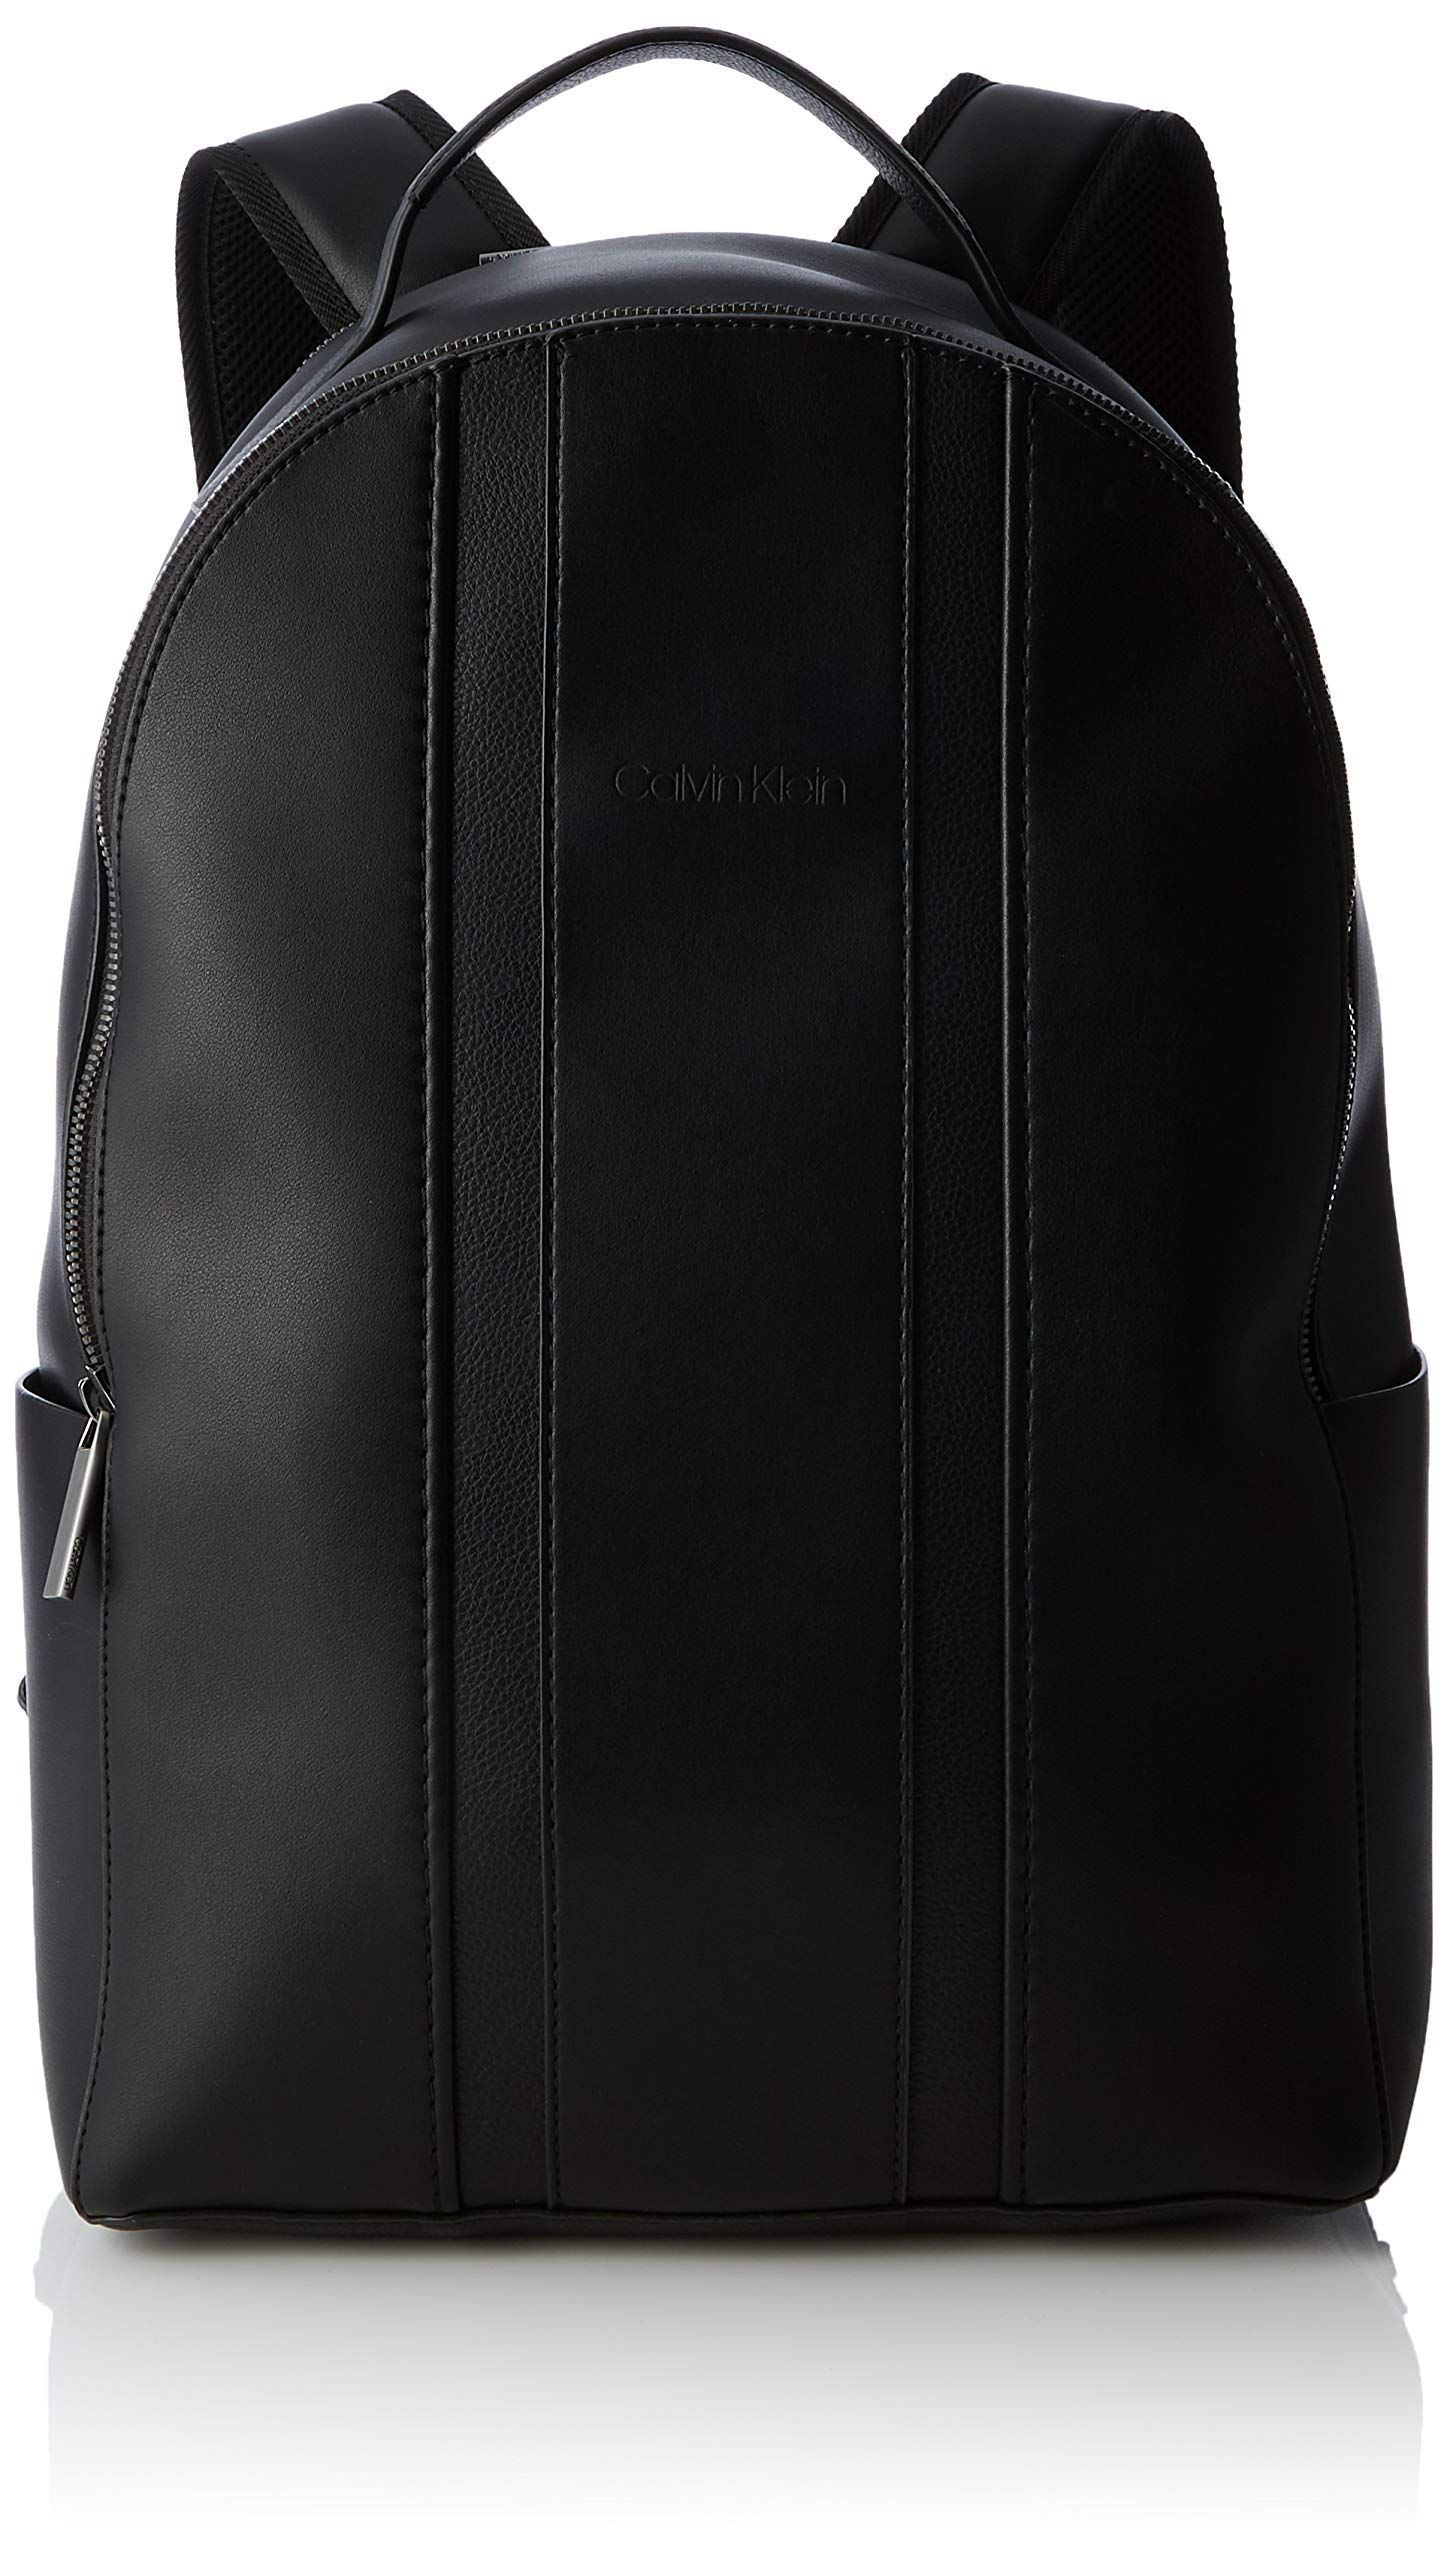 Calvin Klein – Essential 2 G Backpack, Mochilas Hombre, Negro